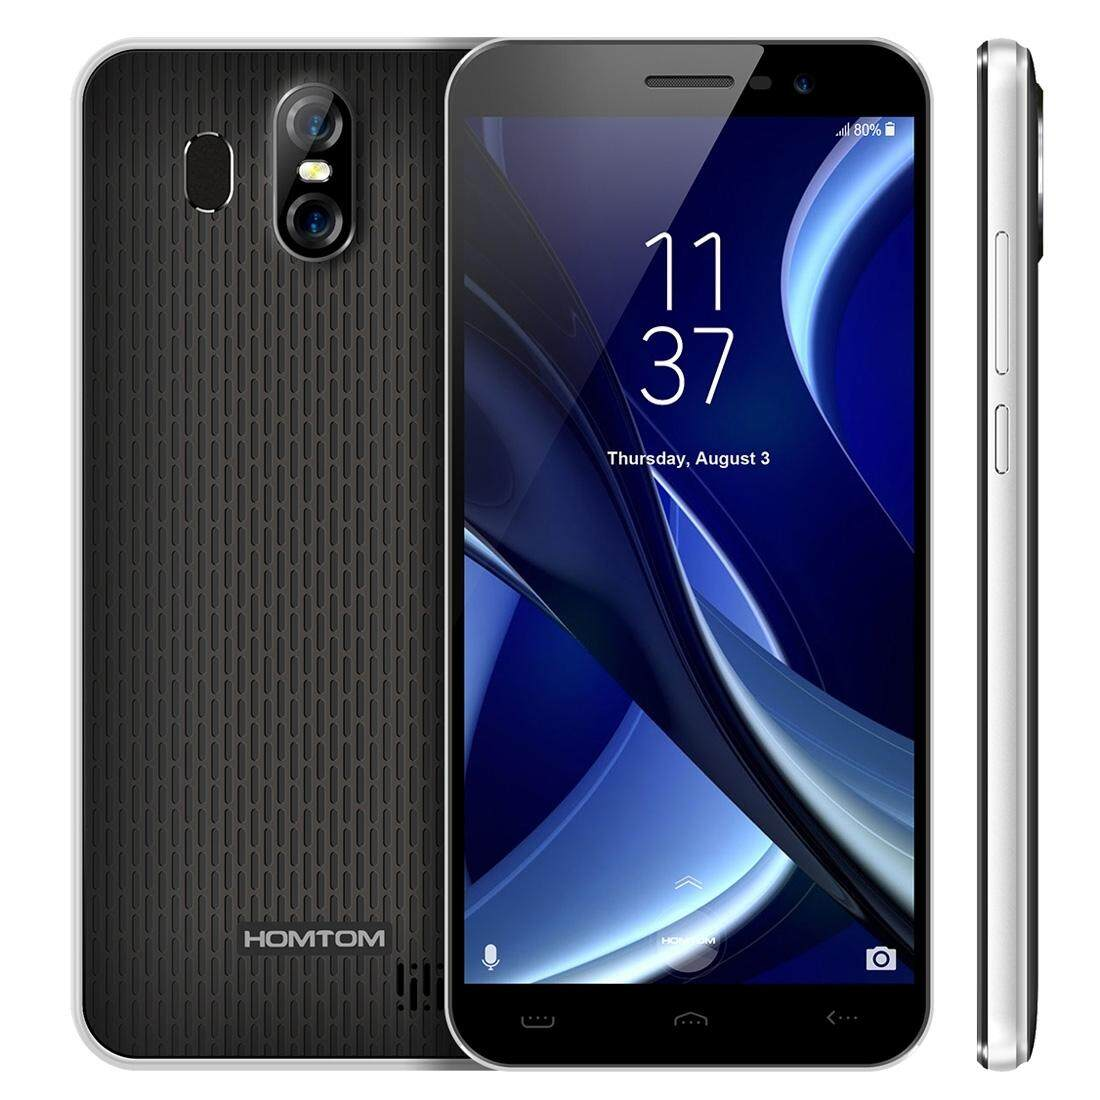 16a556456 Homtom Philippines - Homtom Cellphone for sale - prices   reviews ...